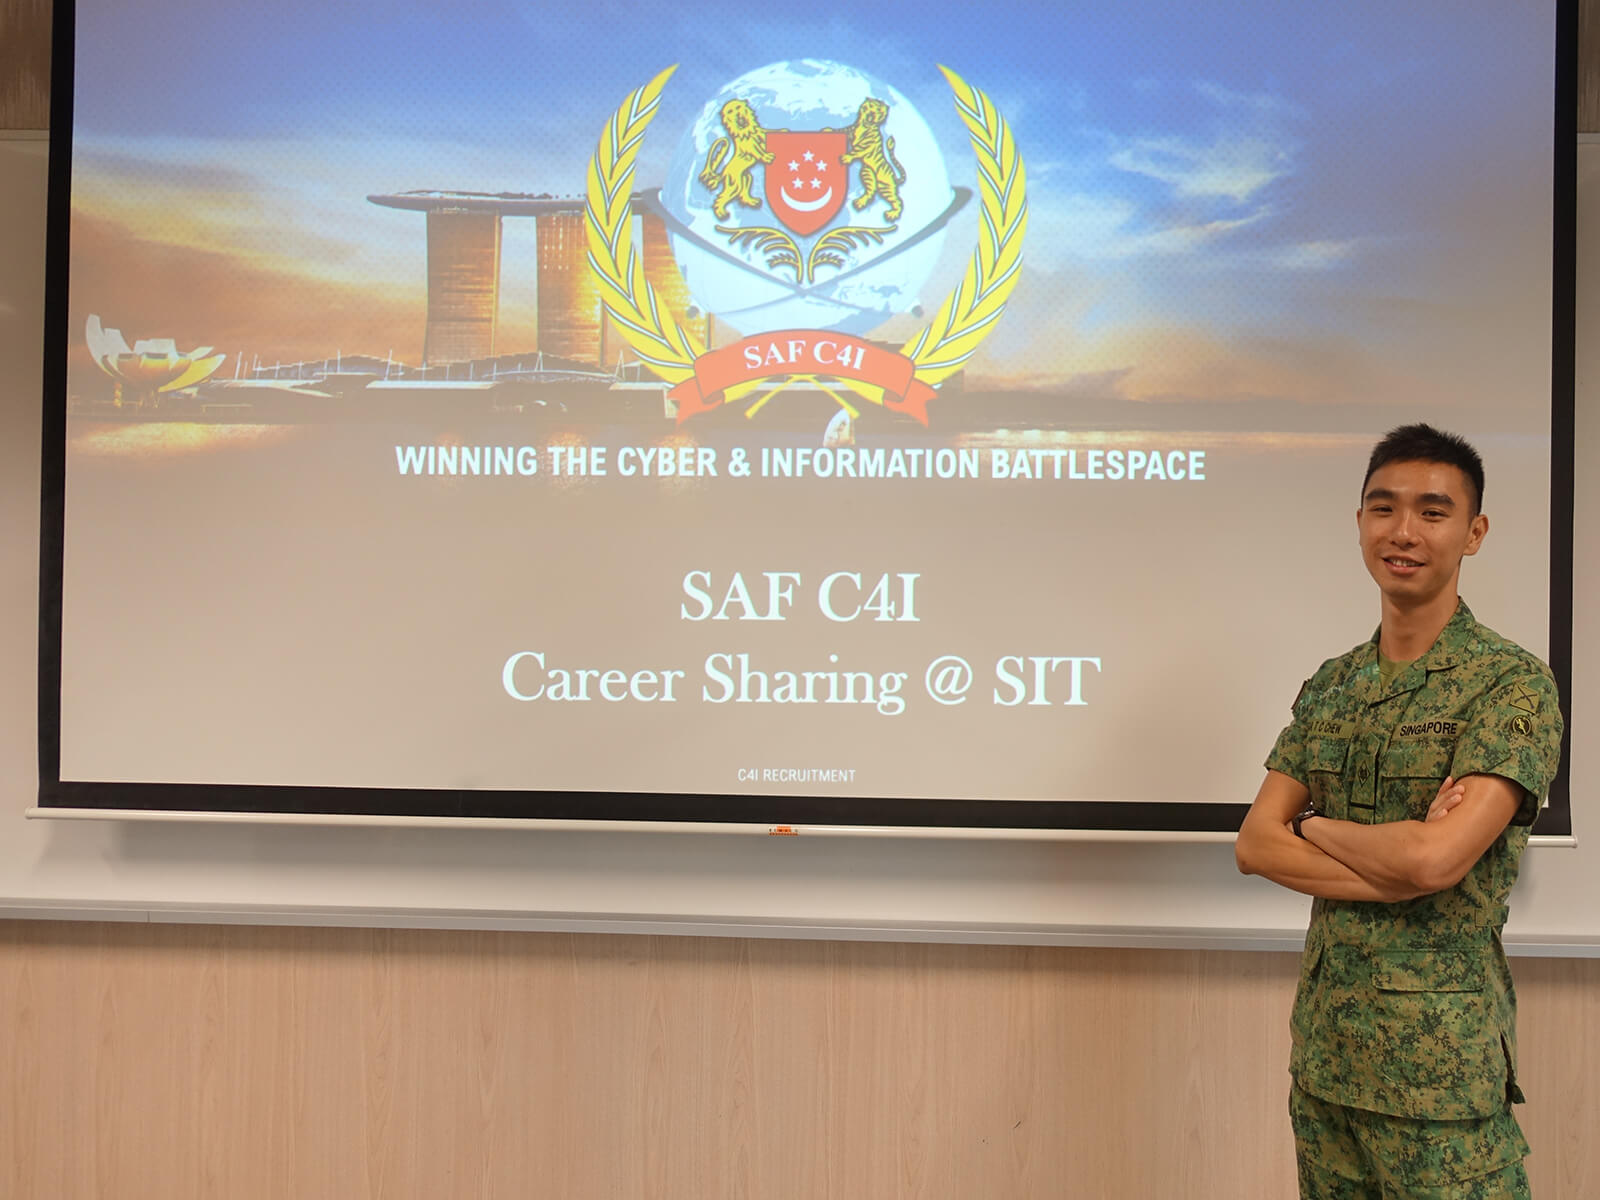 Chew Tee Chin stands in front of a projector screen with the SAF C4I logo.